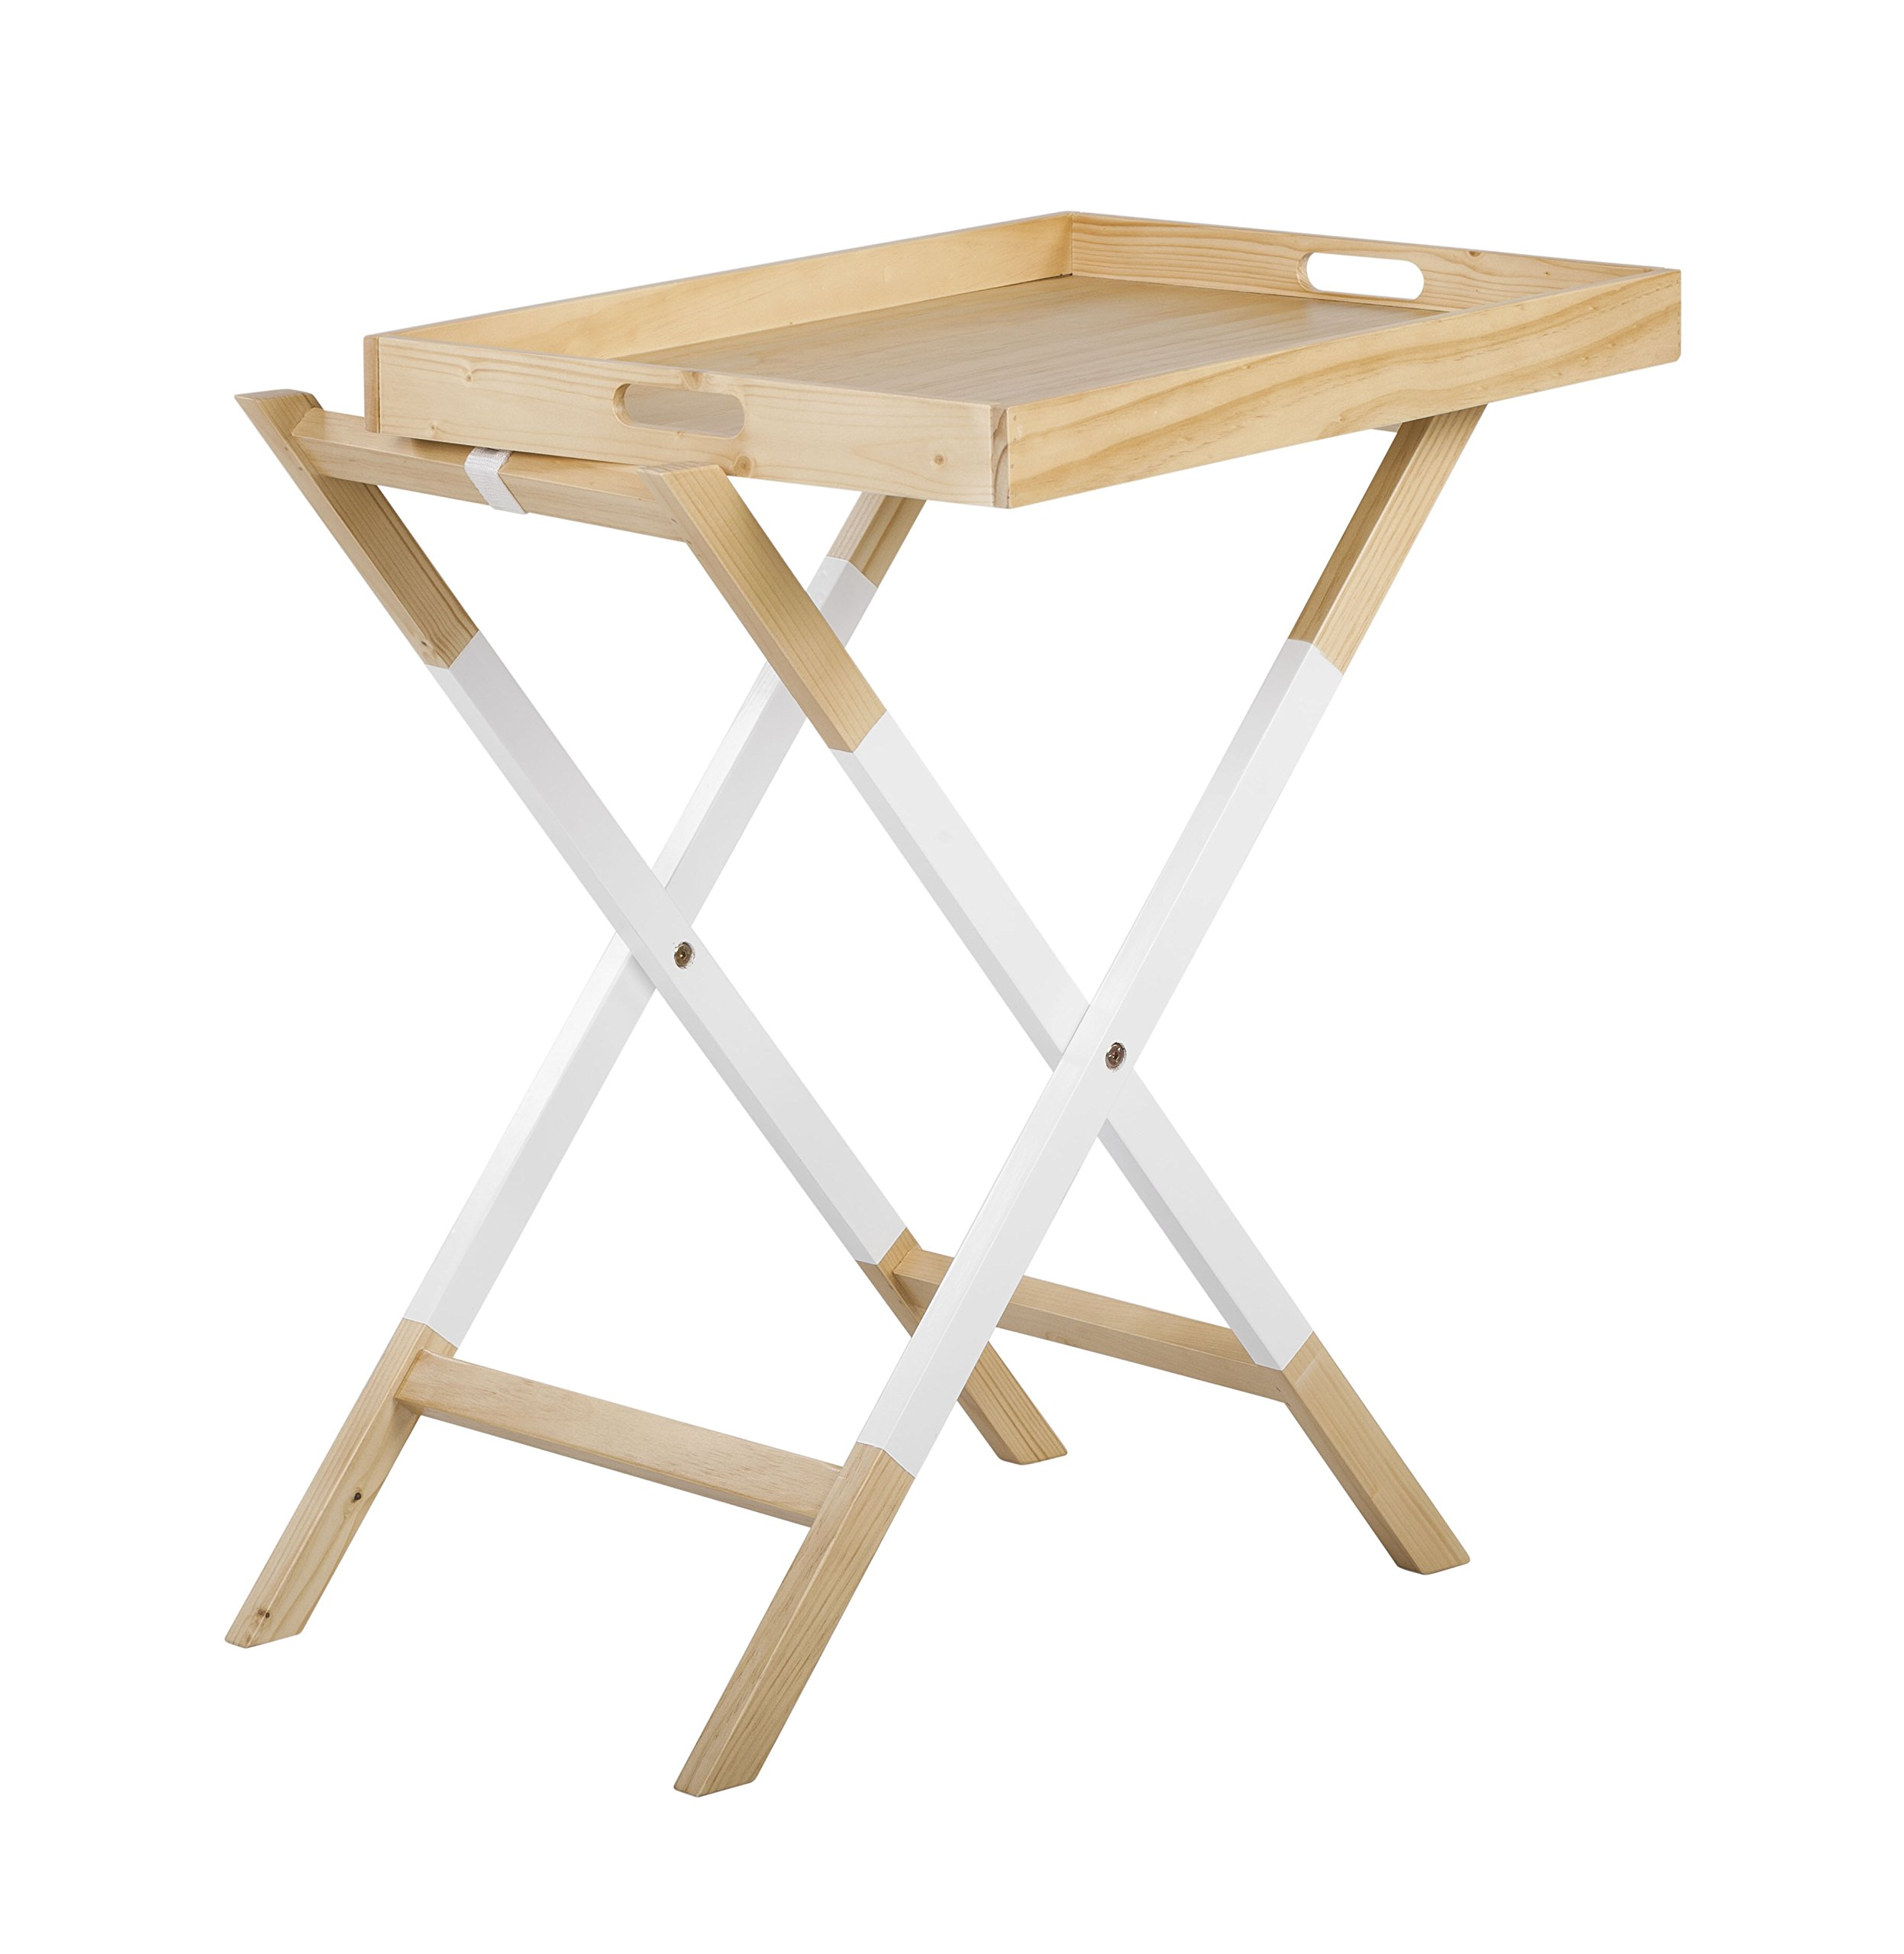 Universal Experts FUST10026A Remus Folding Tray Table, Oak/White by Universal Experts (Image #5)